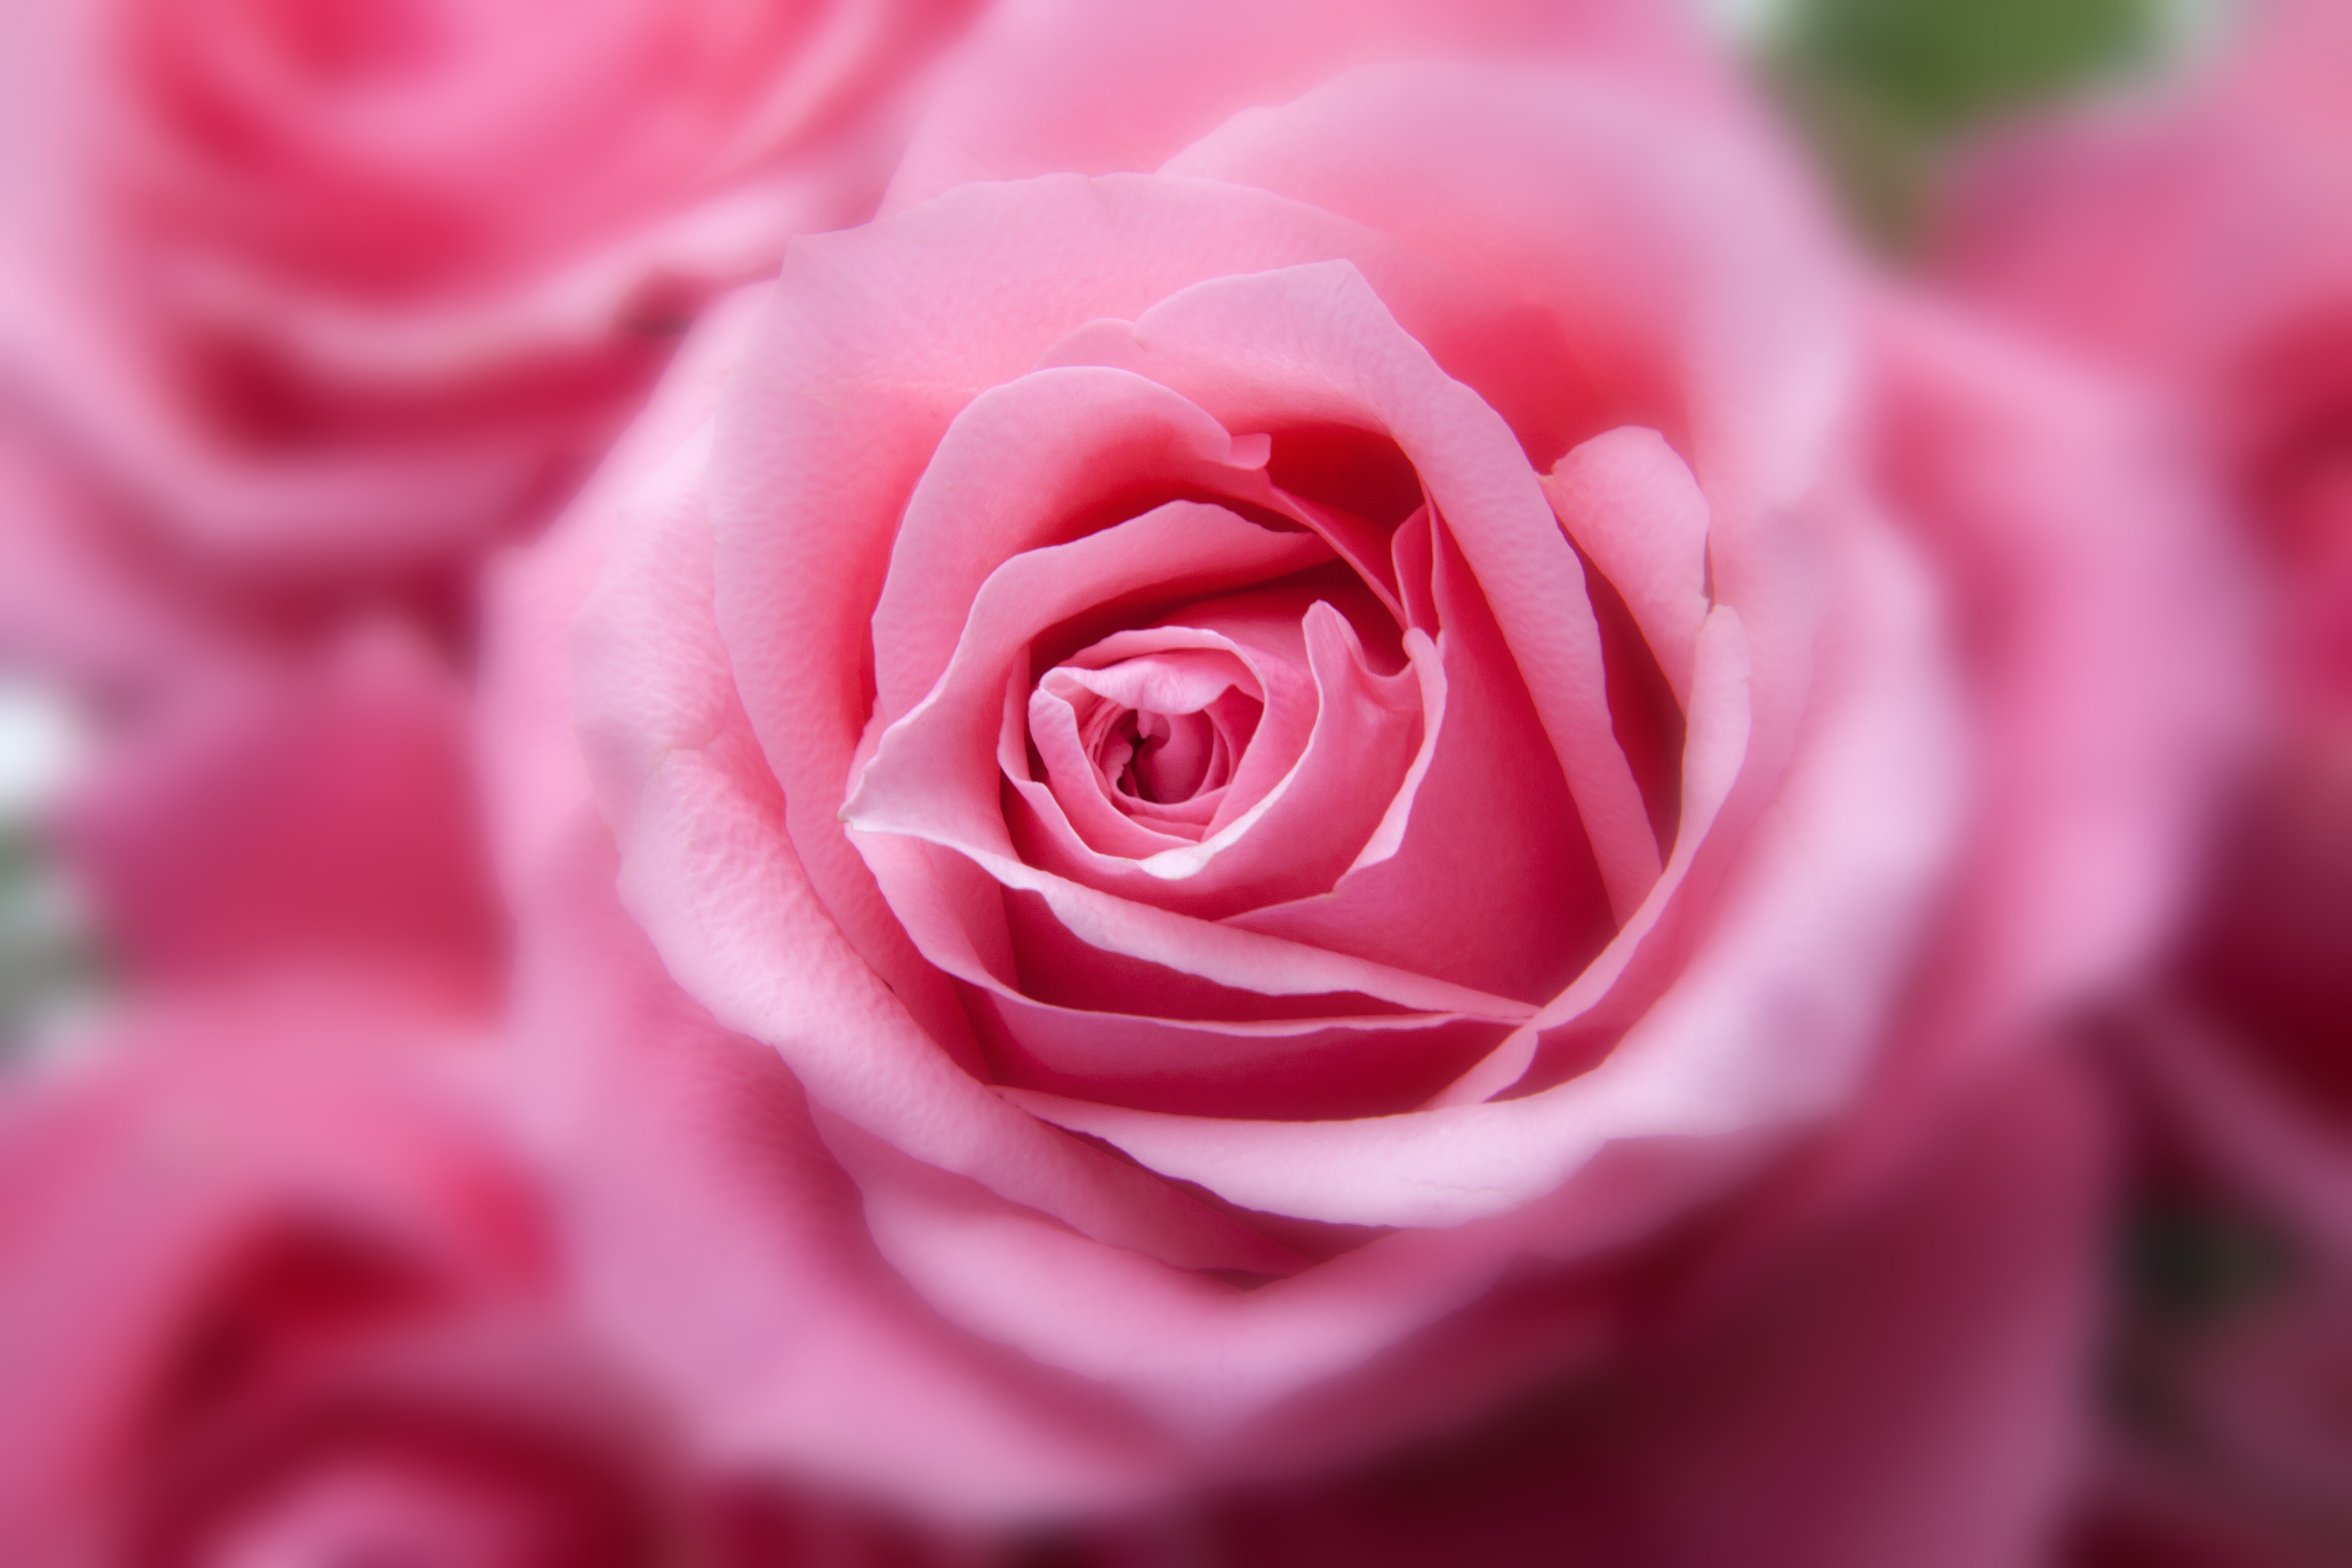 2048x1152 pink rose hd 2048x1152 resolution hd 4k wallpapers images